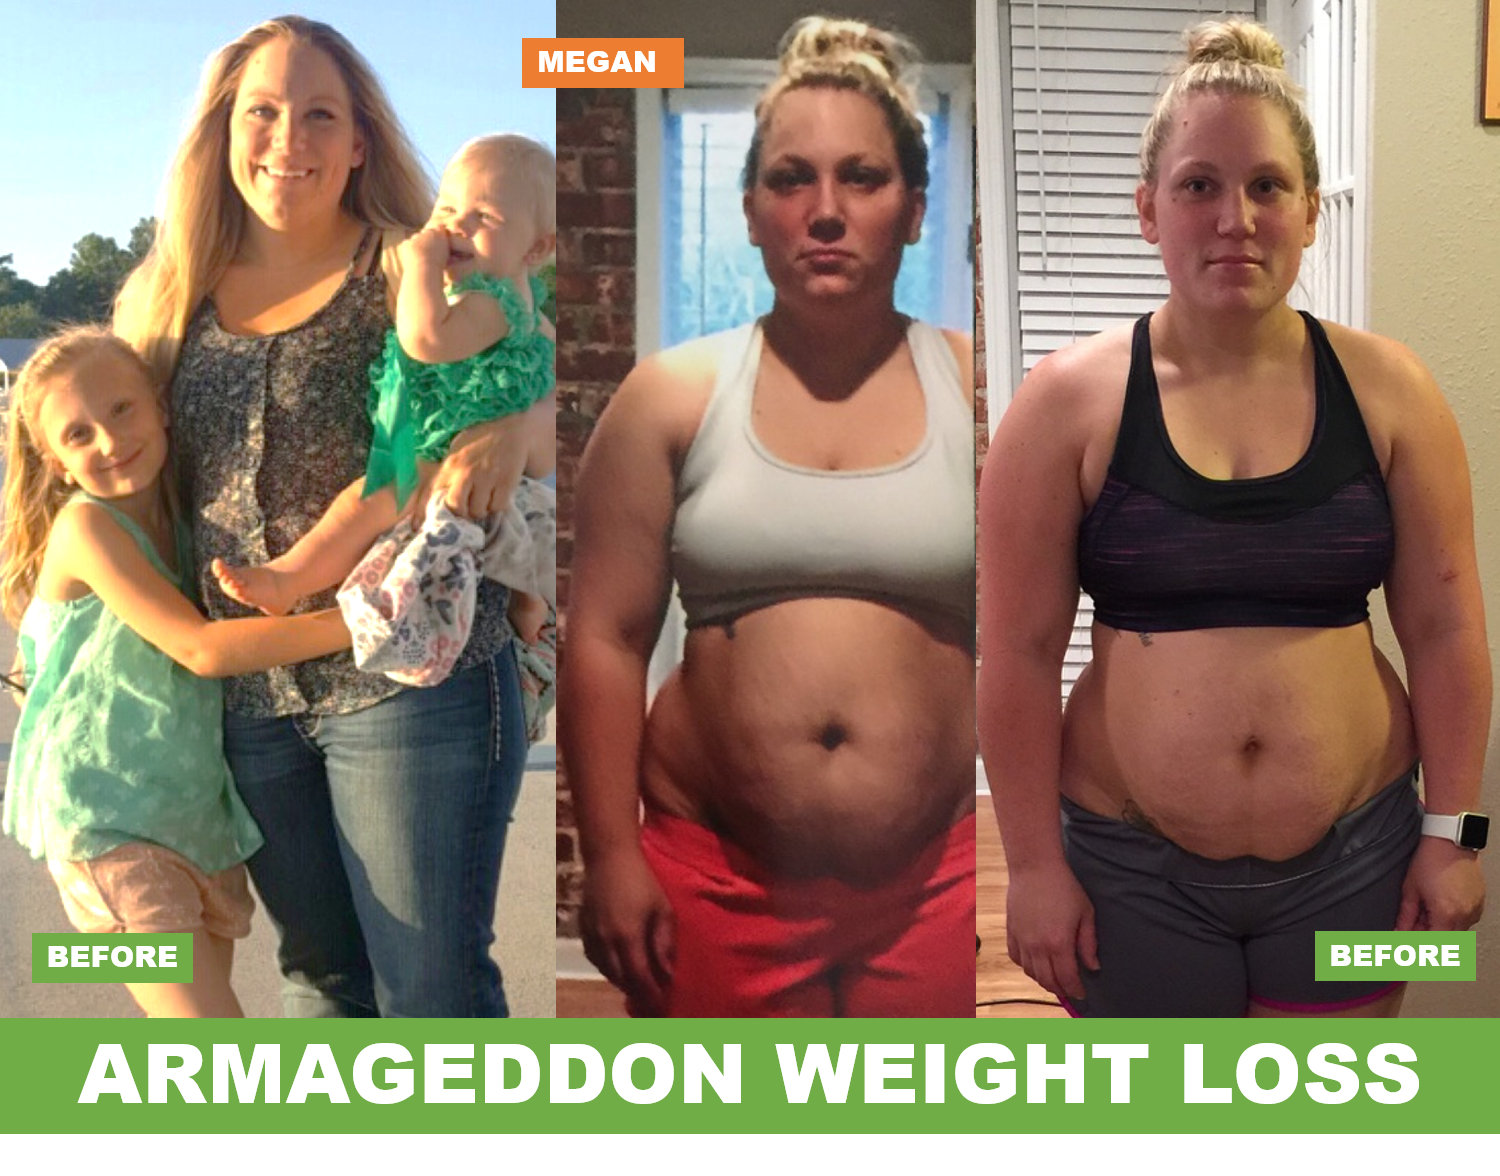 megan-green-florida-armageddon-weight-loss-program-best-weight-loss-dvd-for-women-post-pregnancy-weight-best-exercise-dvd-for-women-best-weight-loss-after-pregnant